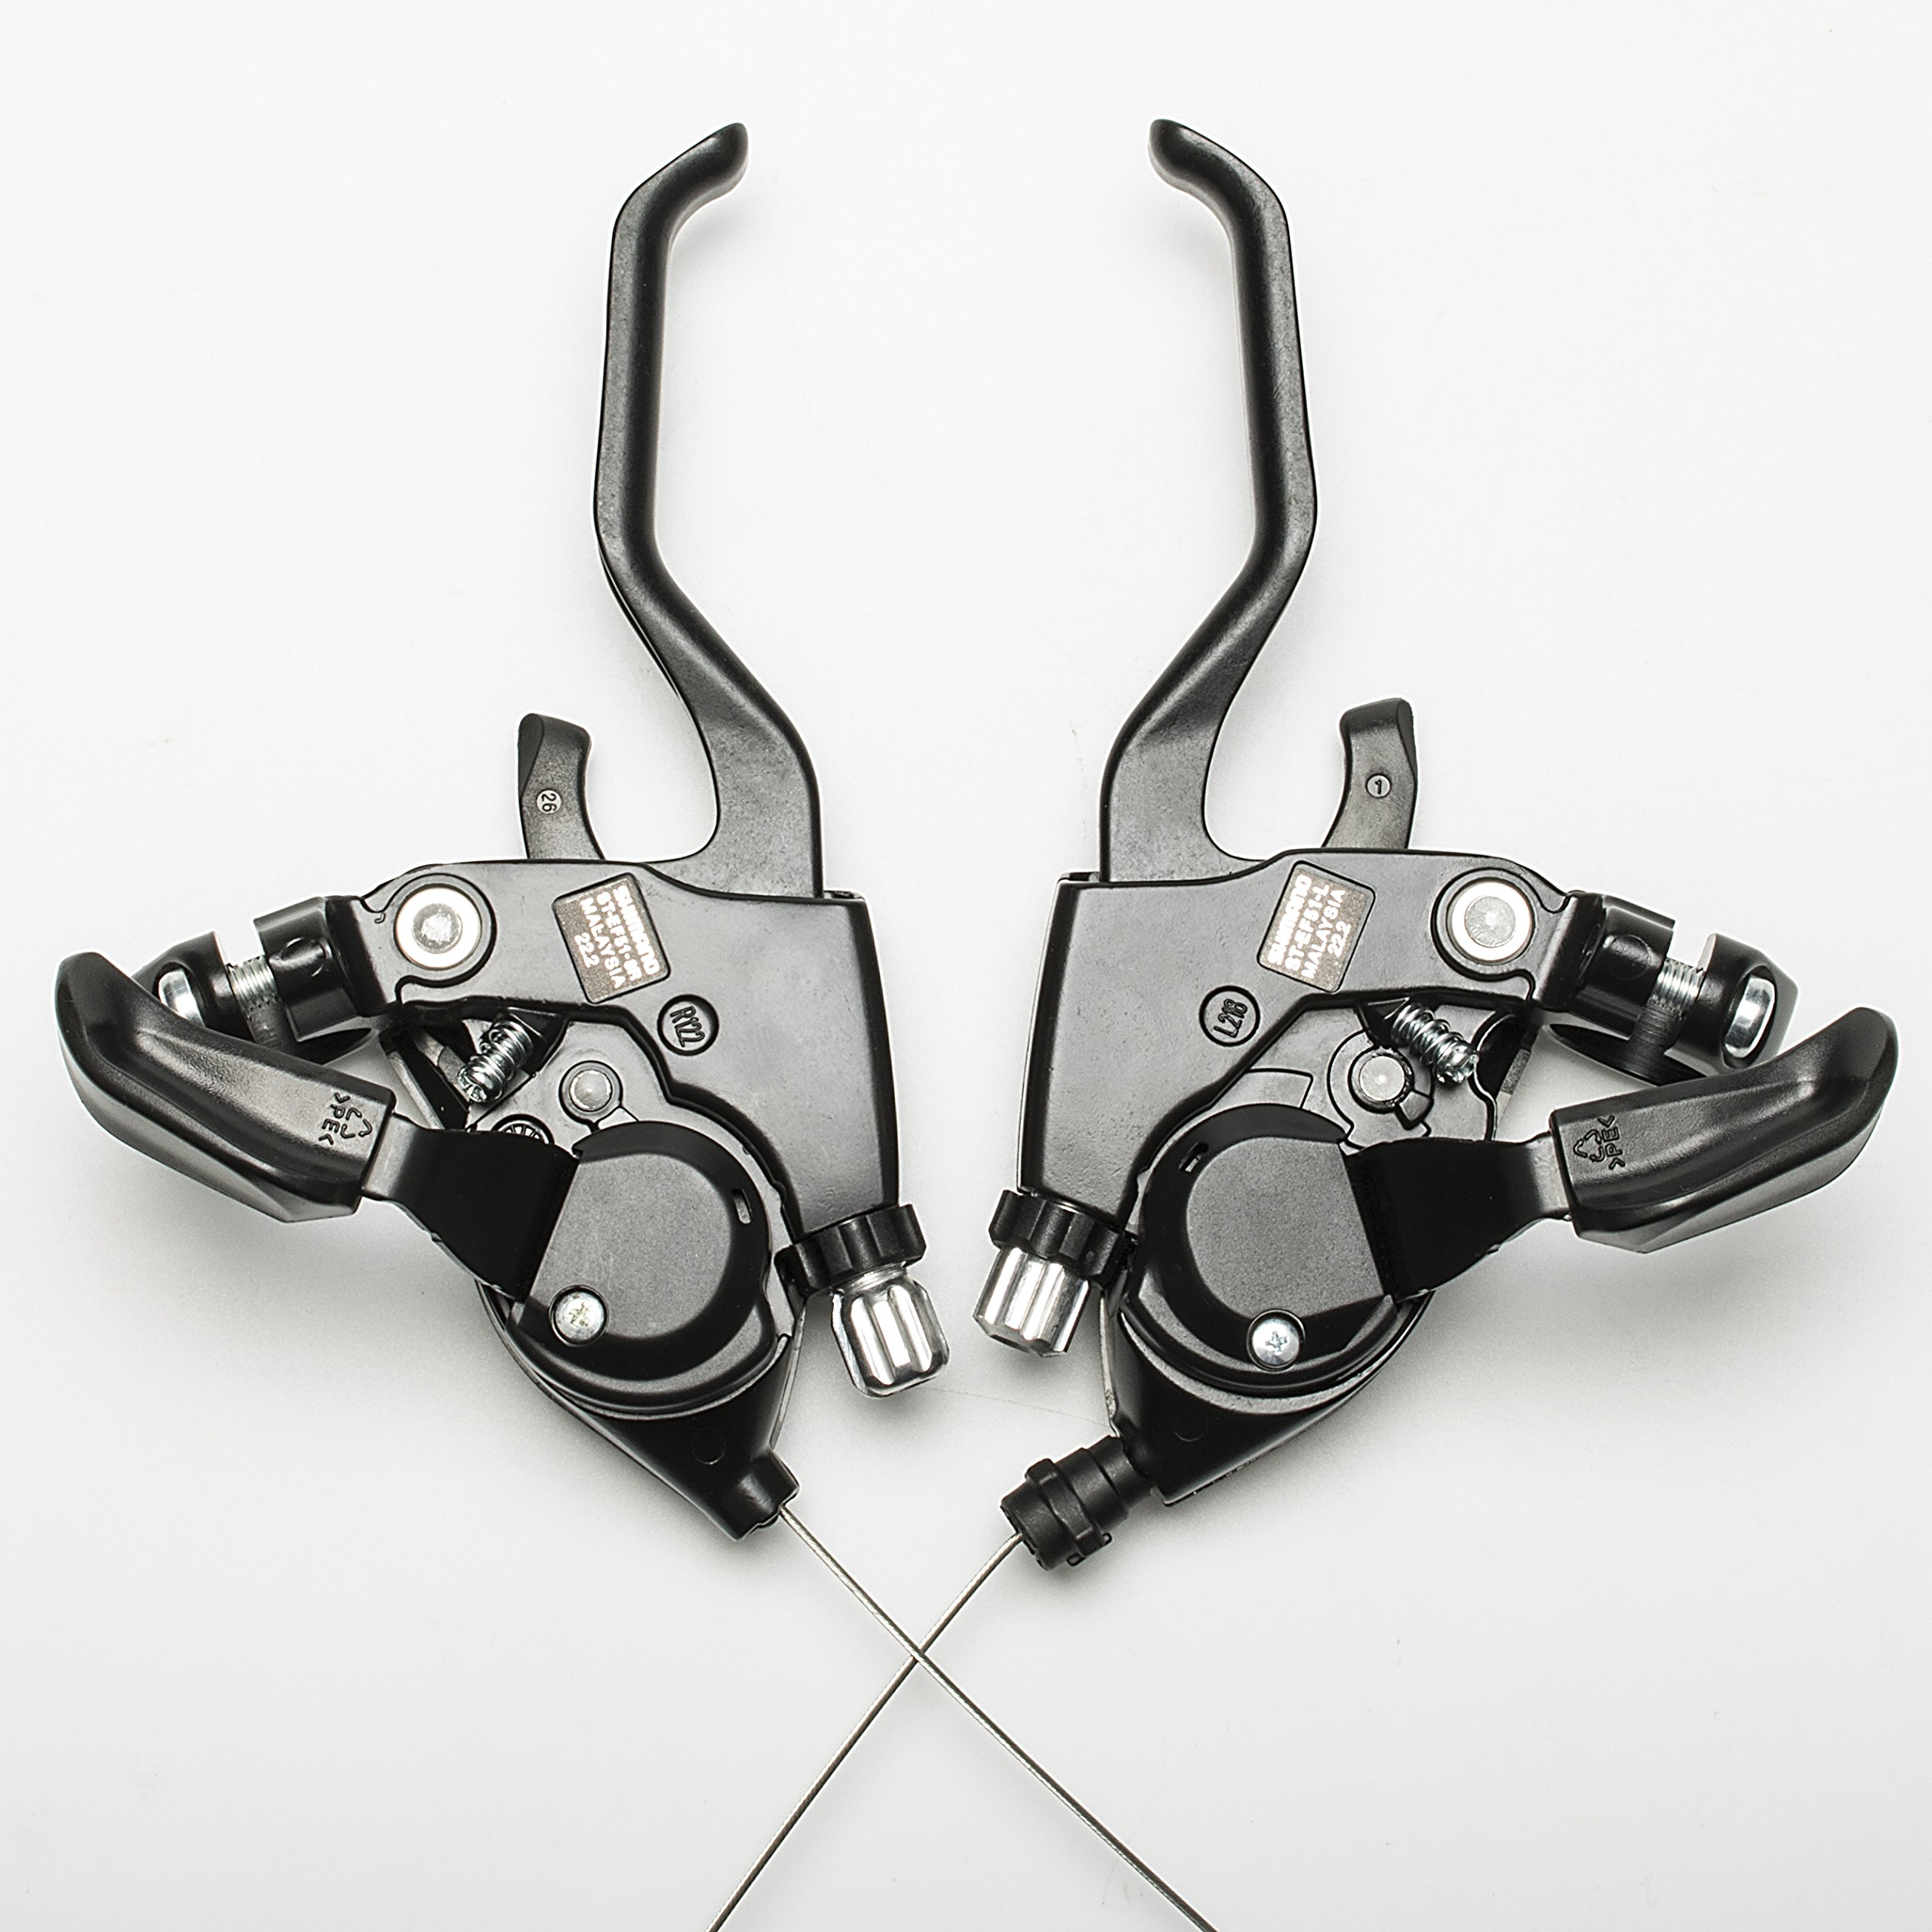 Shimano ST-EF51 3x8 Speed Shifter Brake Lever Combo With Shift Cable by Top-bike (Image #3)